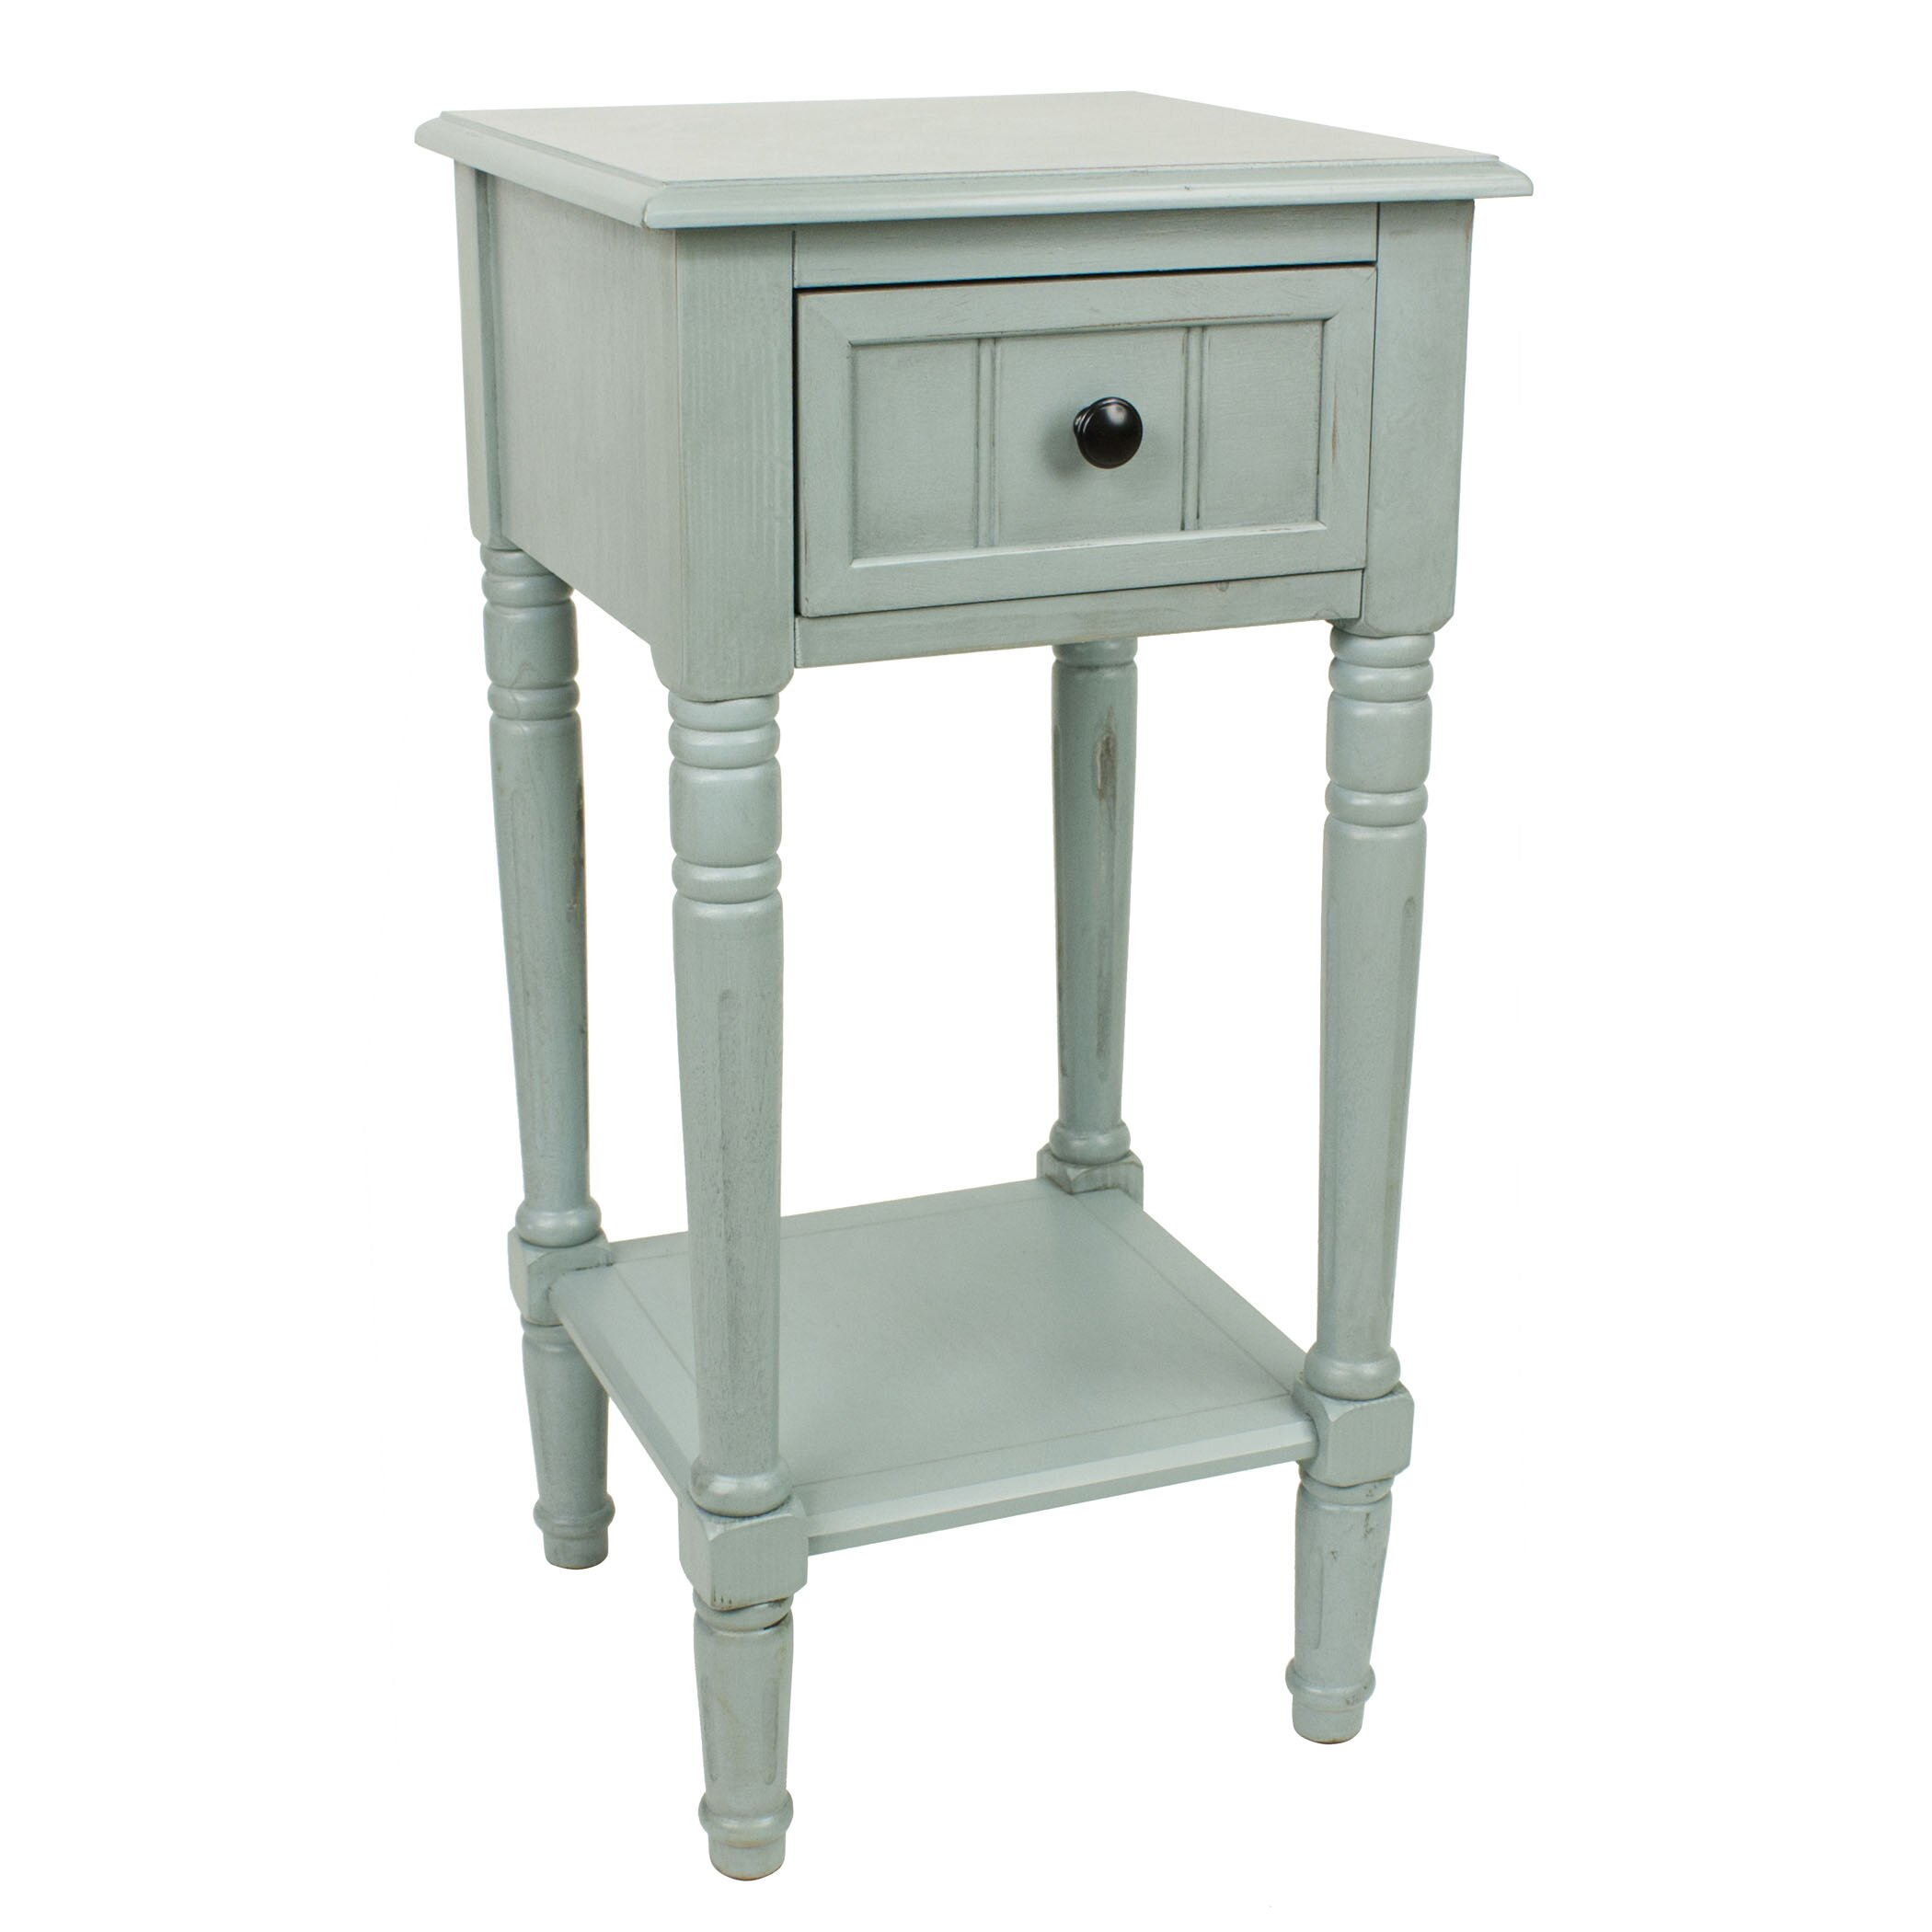 Andover mills everly 1 drawer end table reviews wayfair for End tables for sale near me